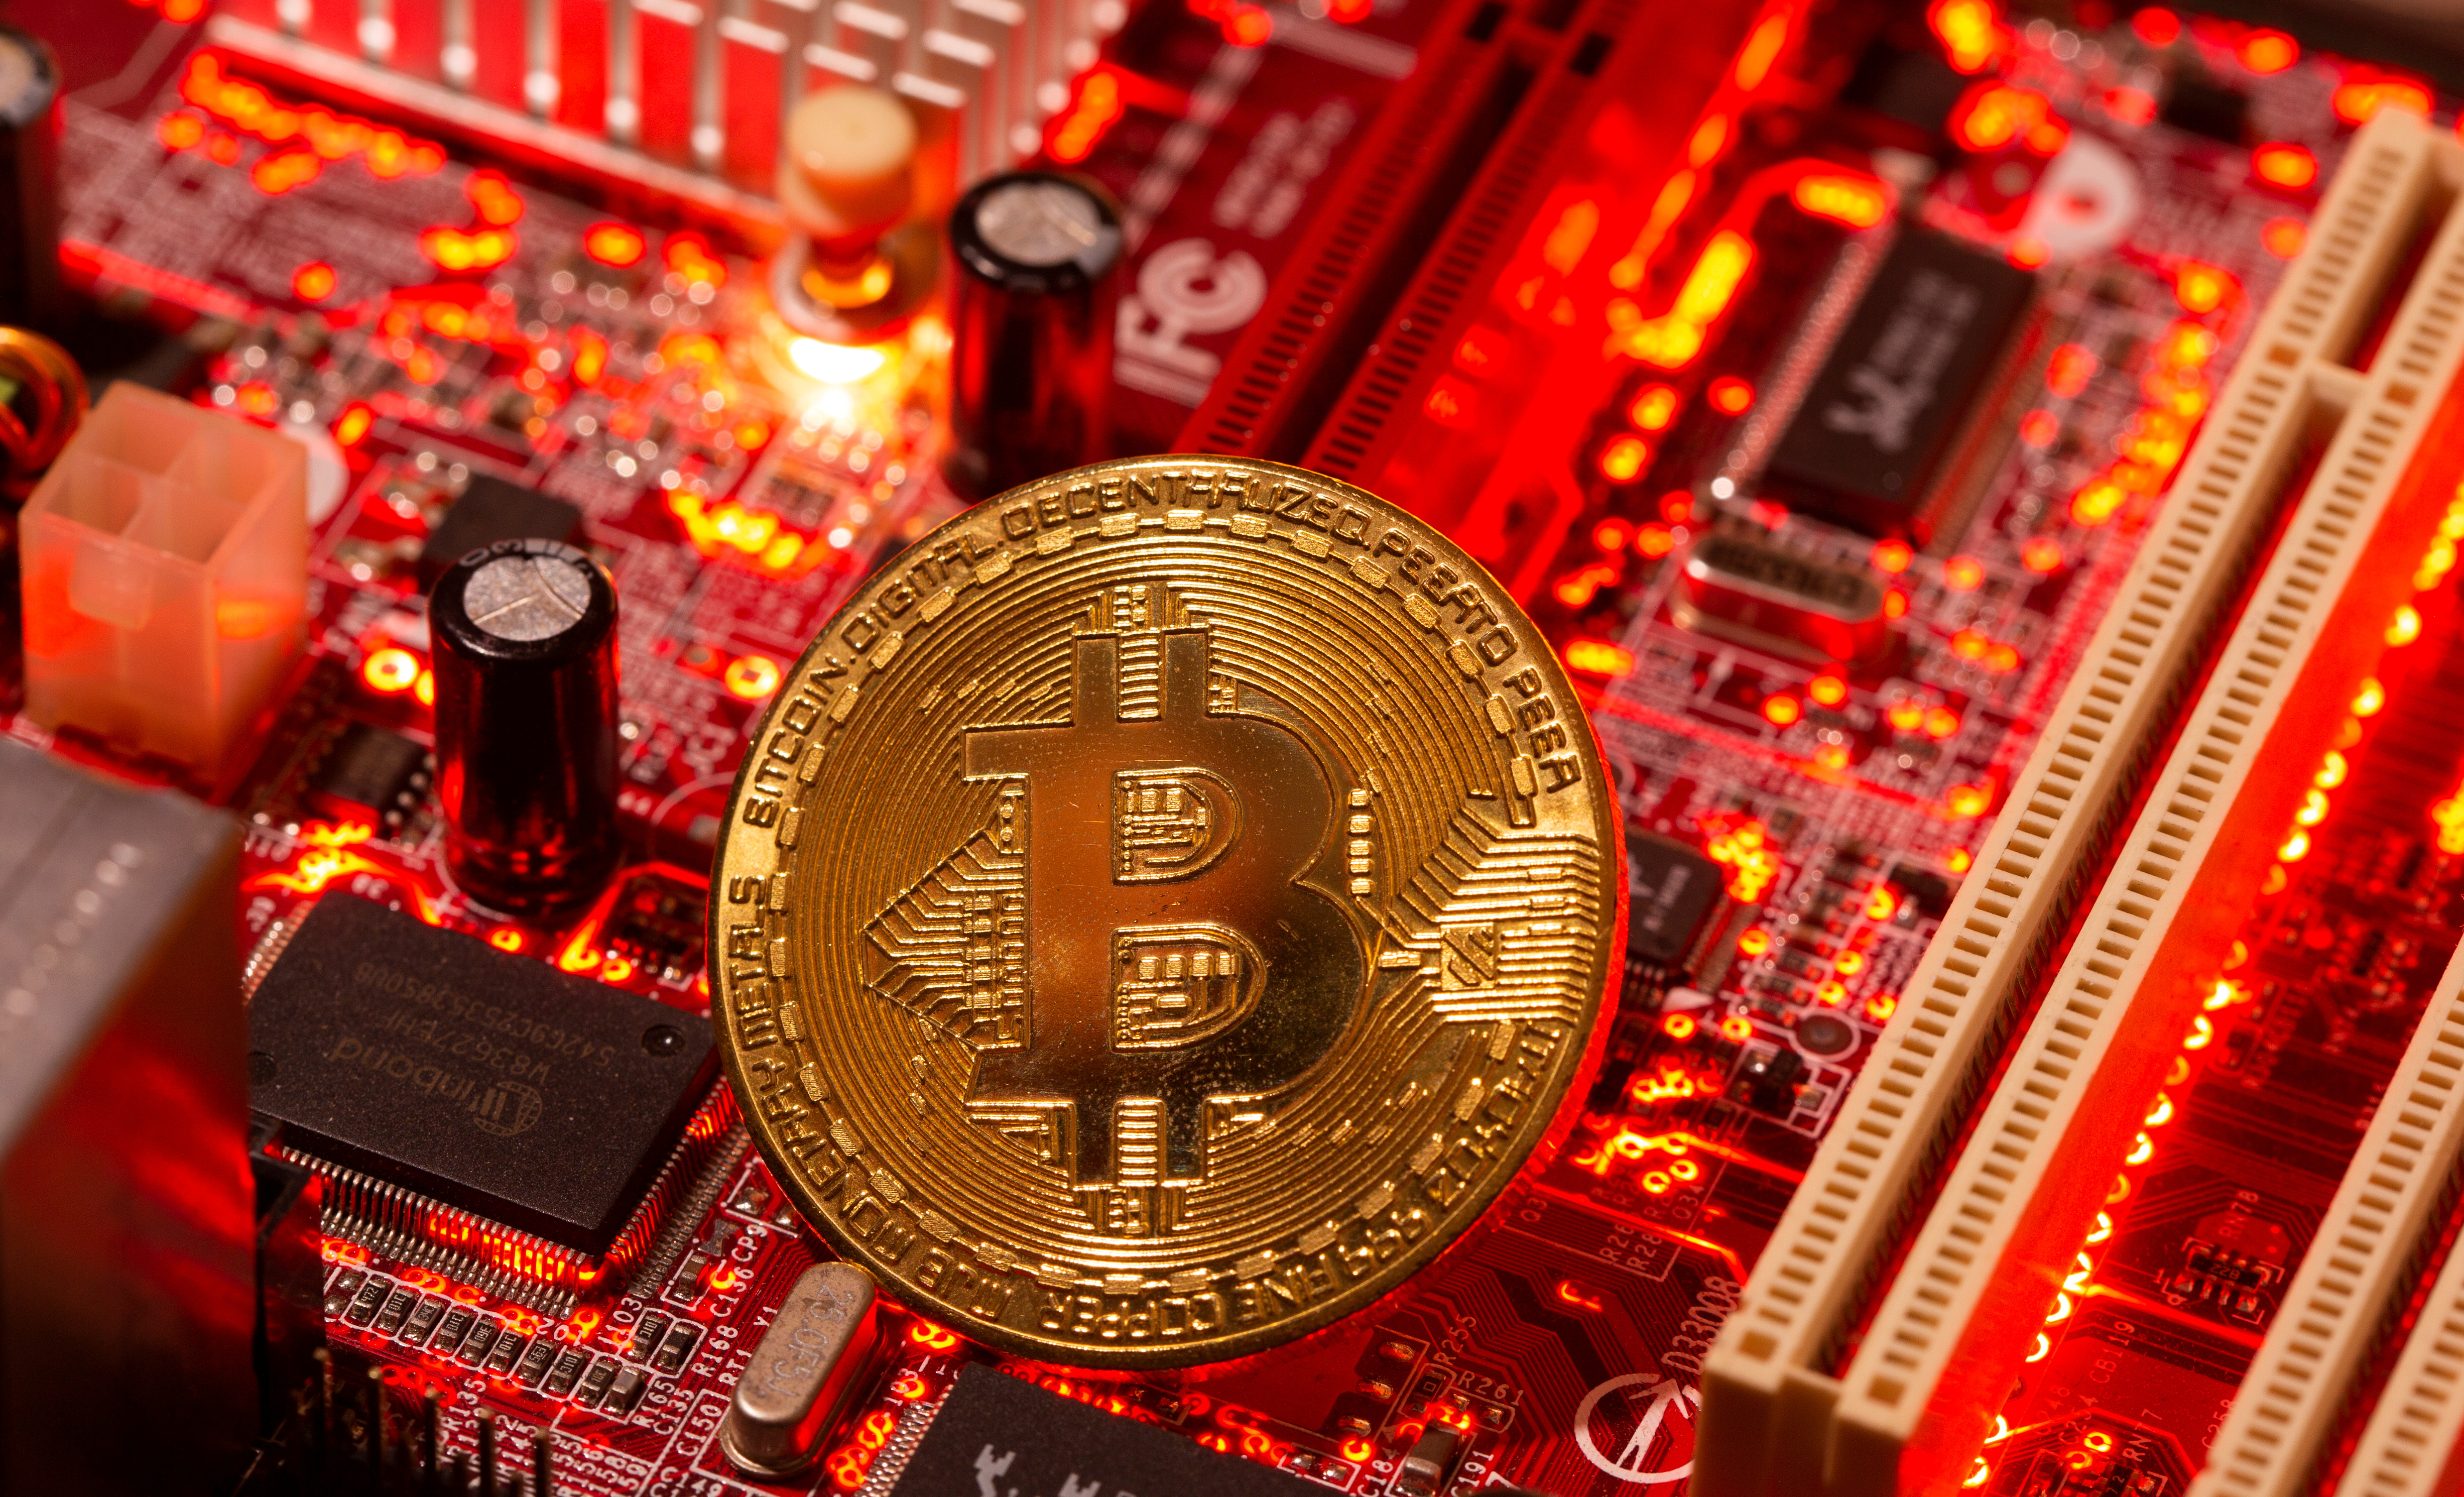 A representation of virtual currency Bitcoin is placed on a computer motherboard in this illustration taken January 21, 2021. REUTERS/Dado Ruvic/Illustration